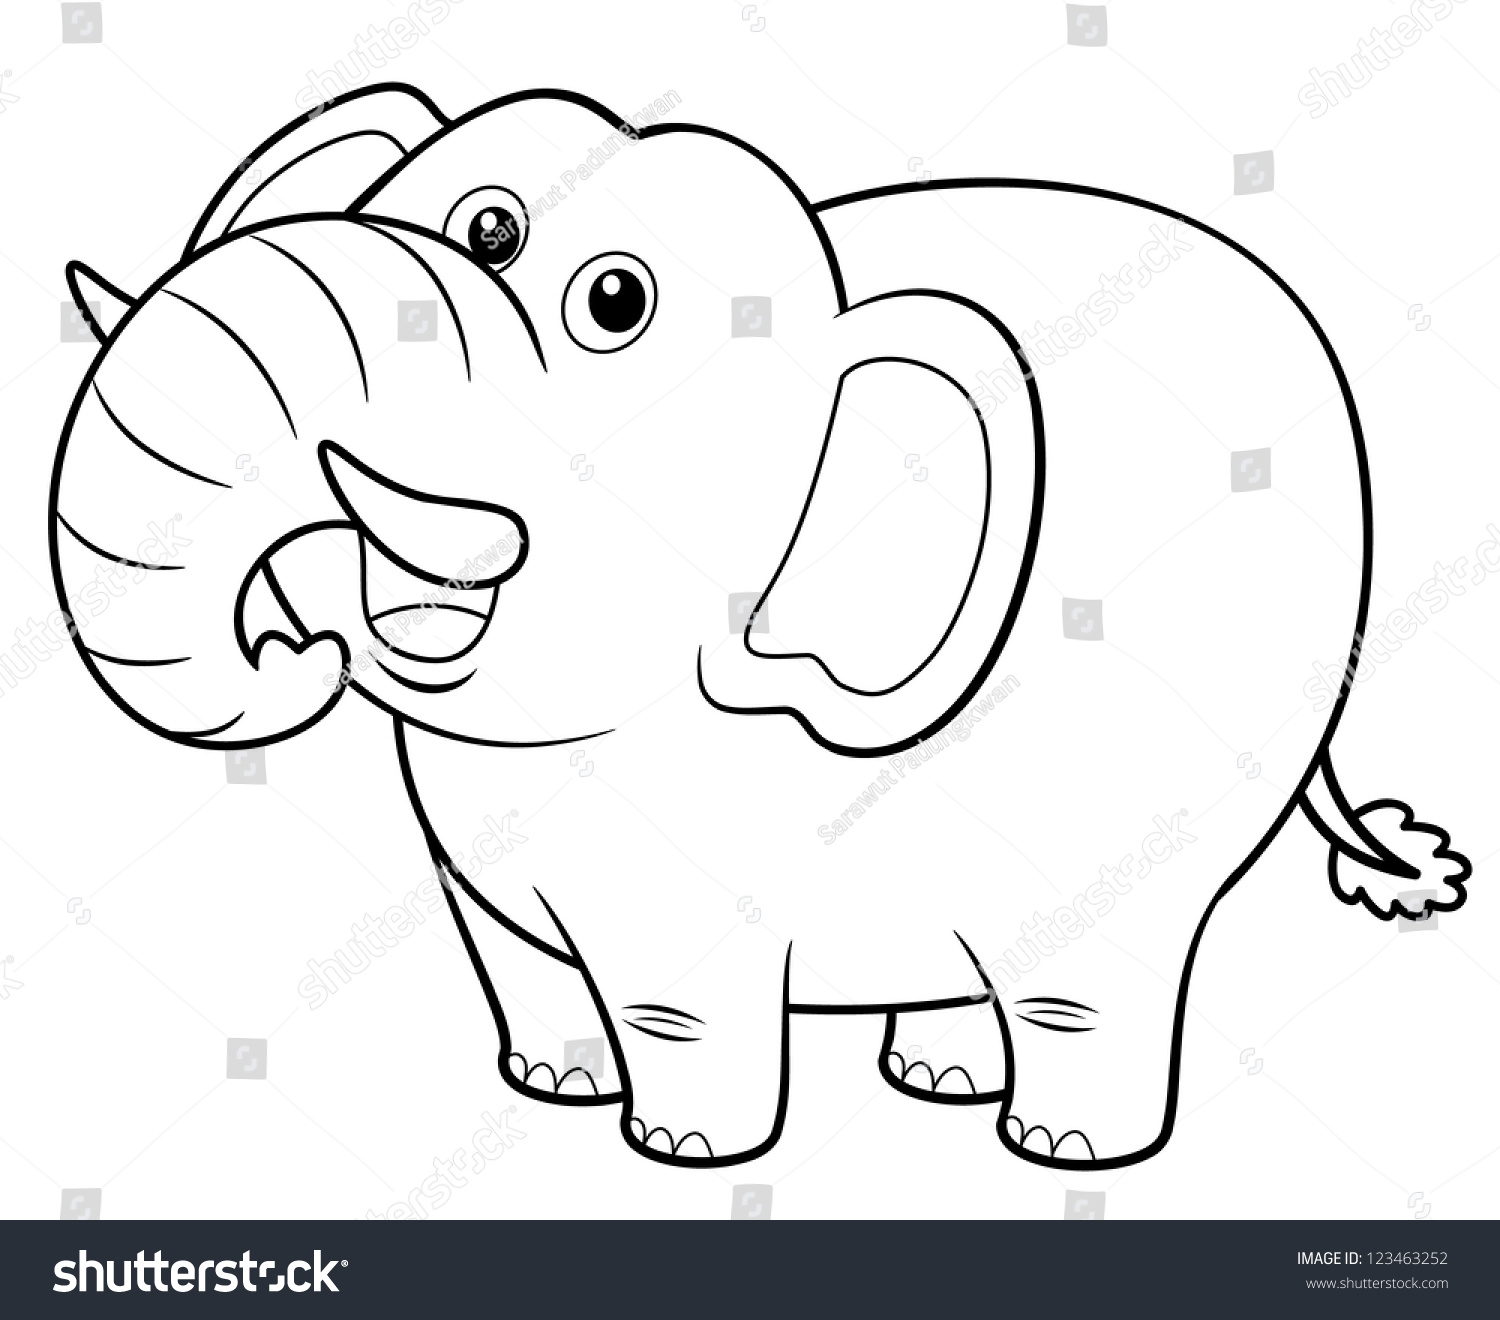 Coloring pictures elephant - Illustration Of Cartoon Elephant Coloring Book